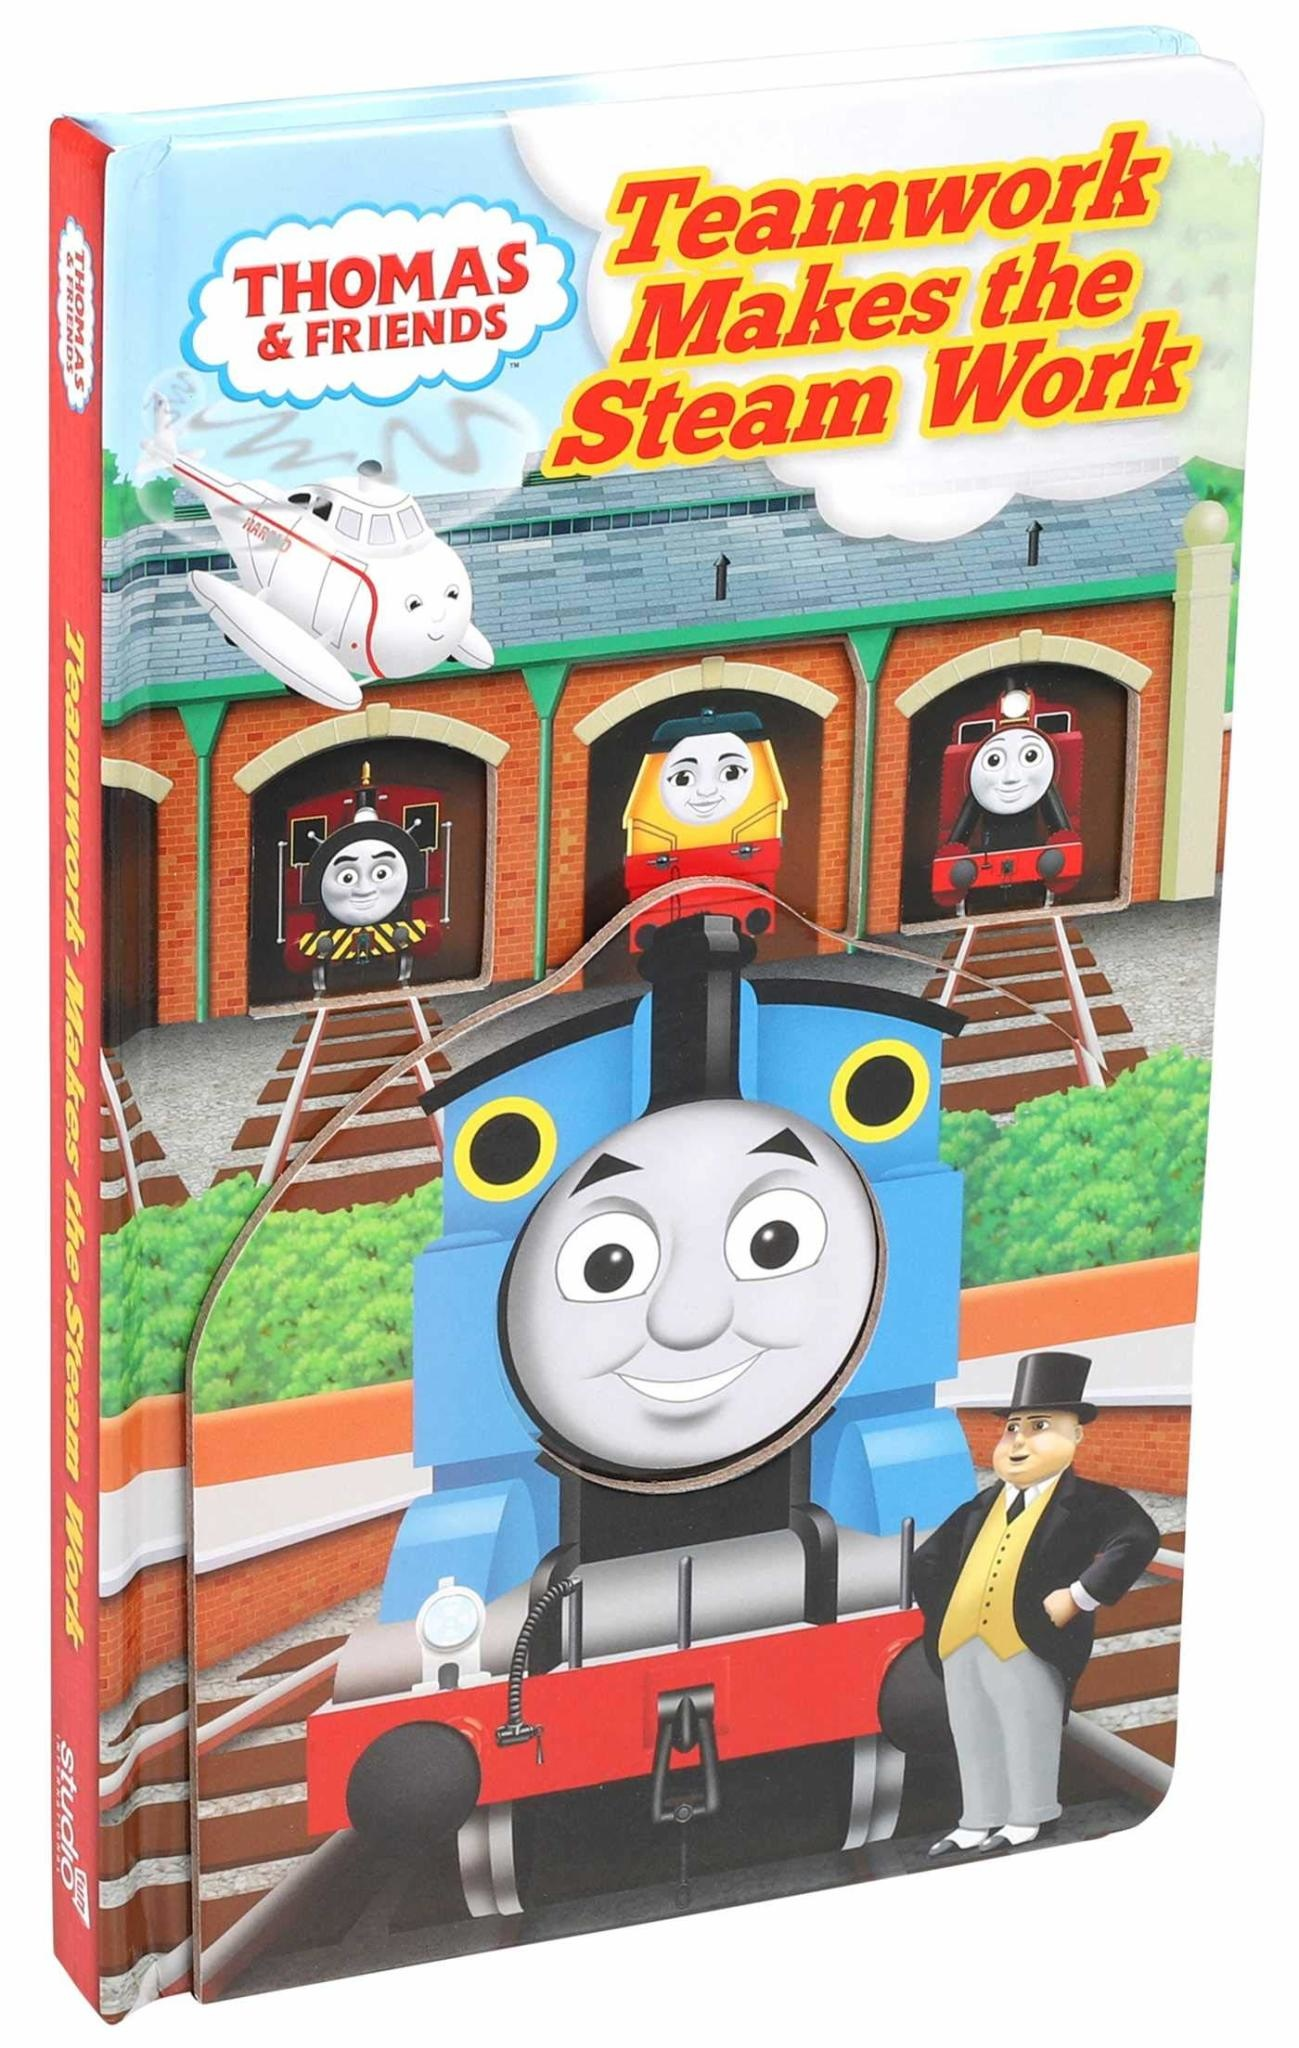 Thomas & Friends: Teamwork Makes the Steam Work